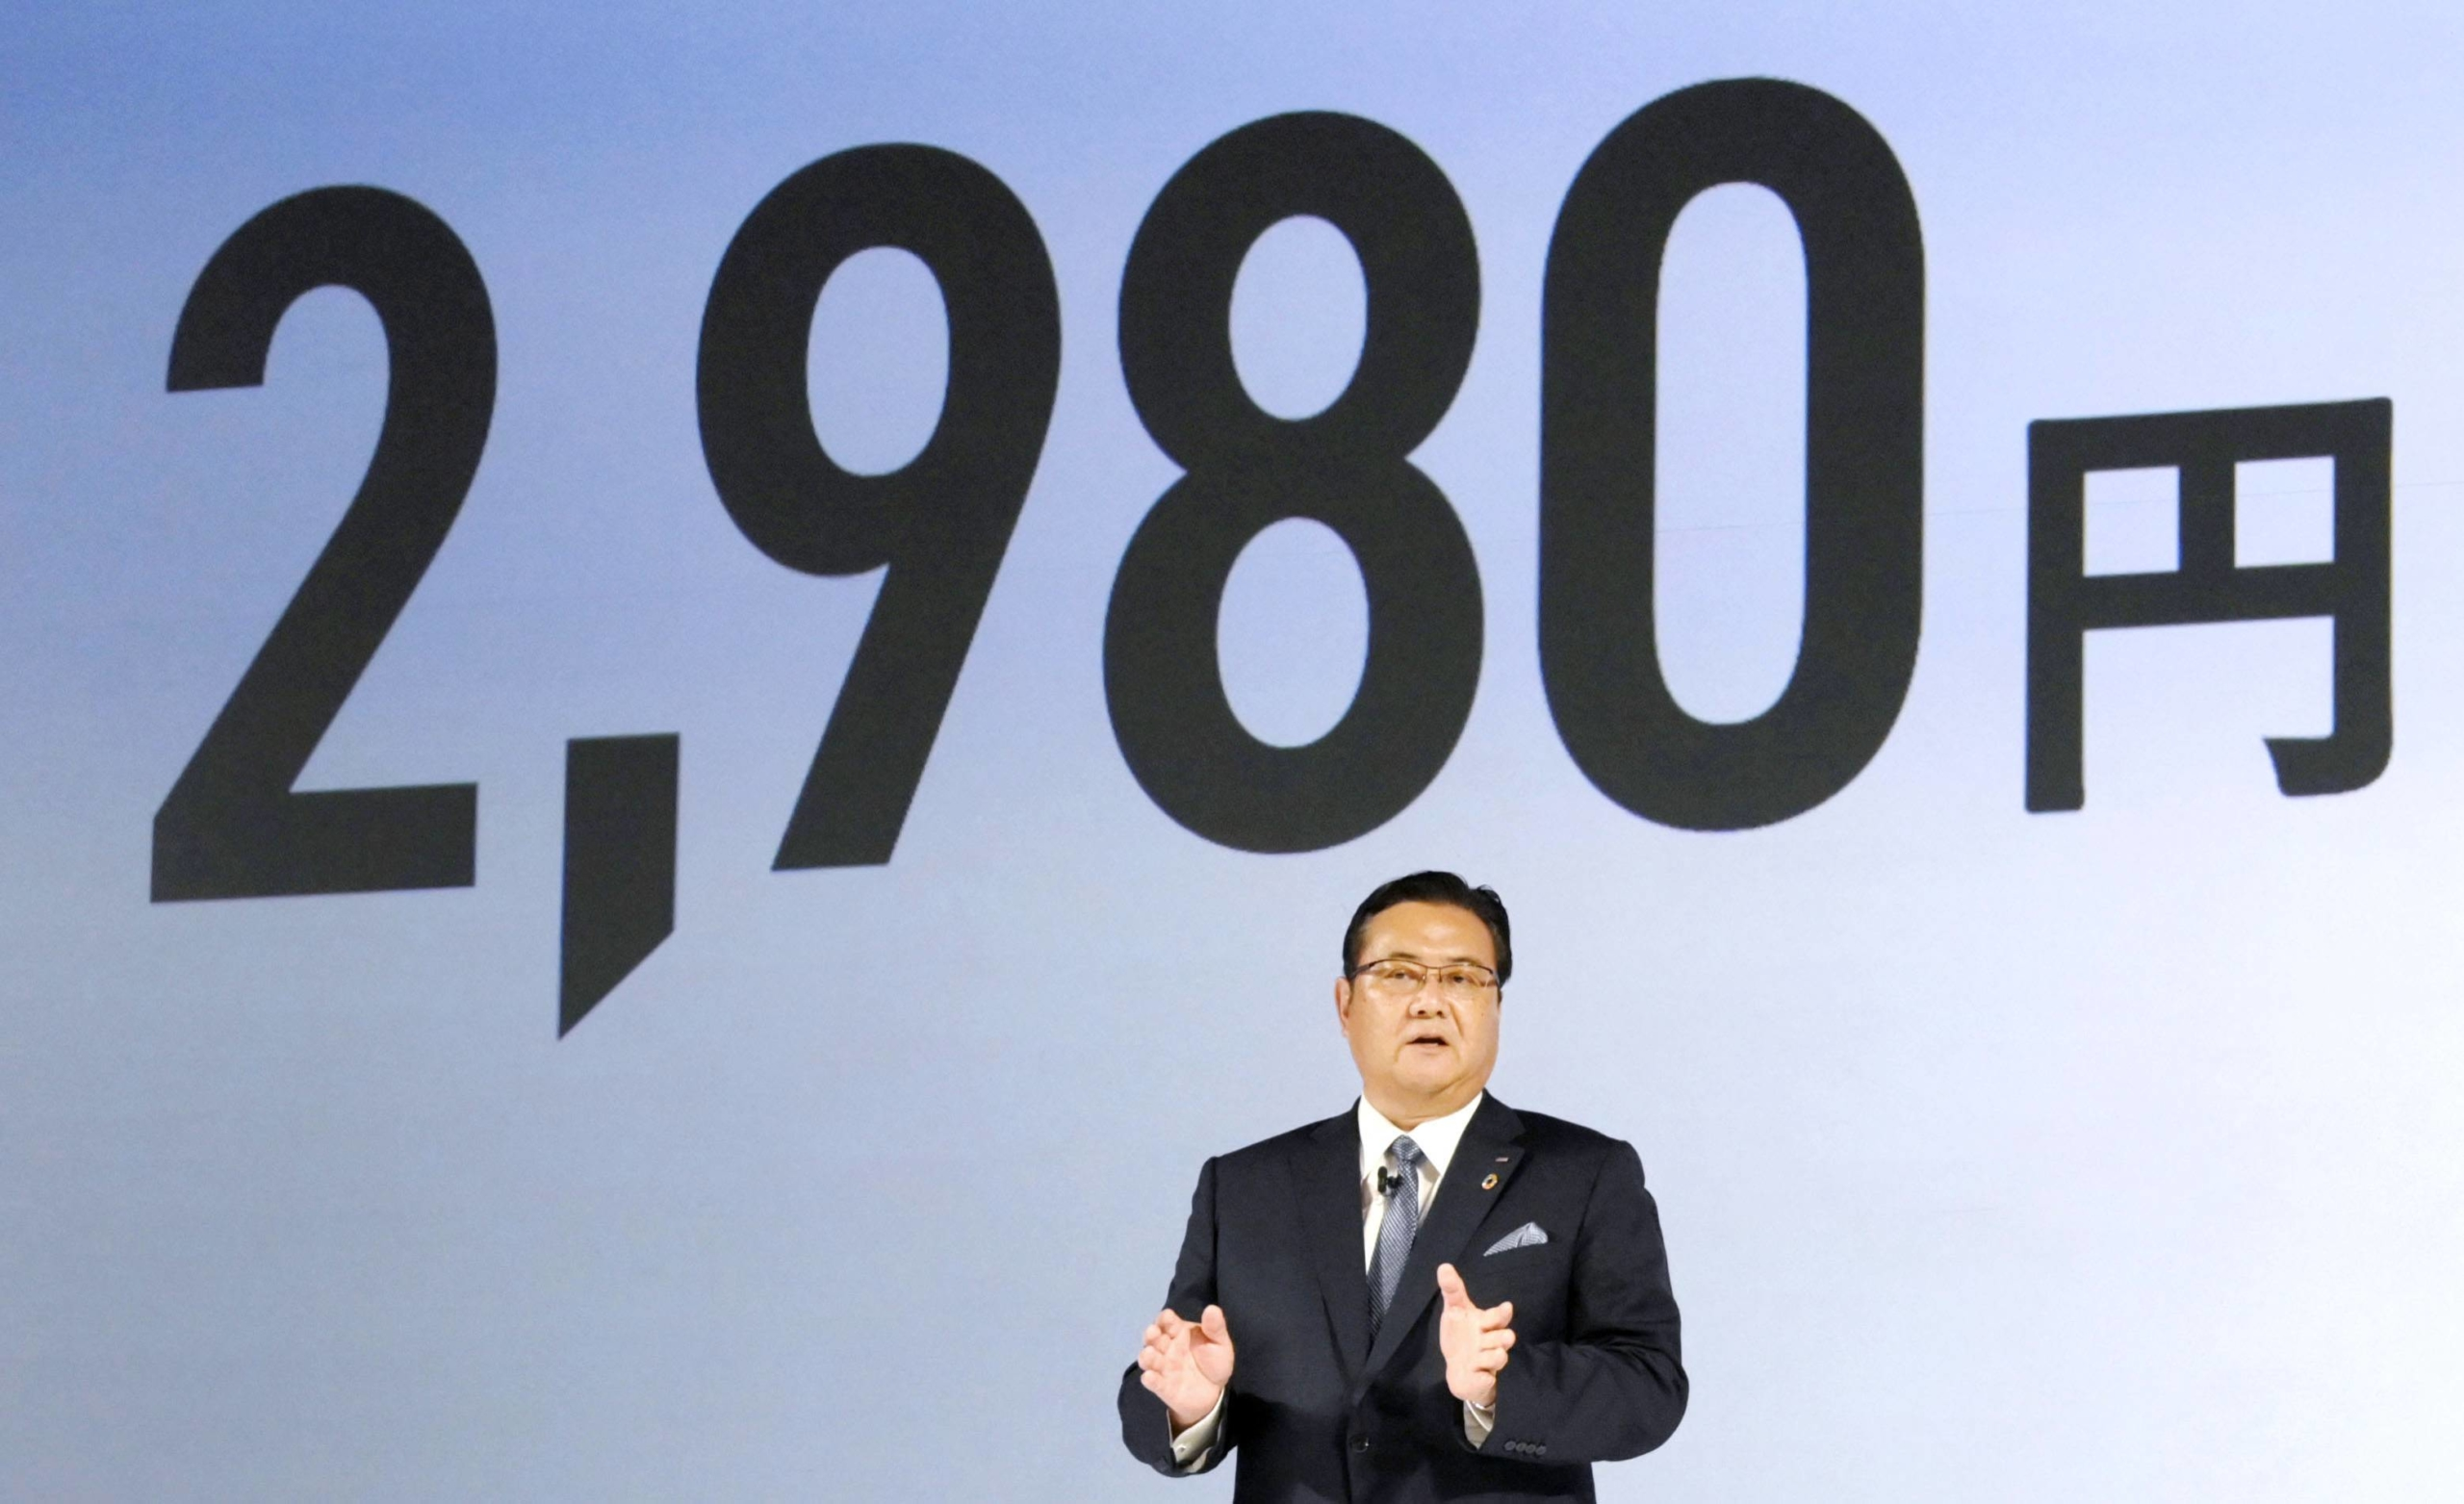 NTT Docomo President Motoyuki Ii speaks about the firm's new pricing plan in a news conference Thursday in Tokyo.   KYODO